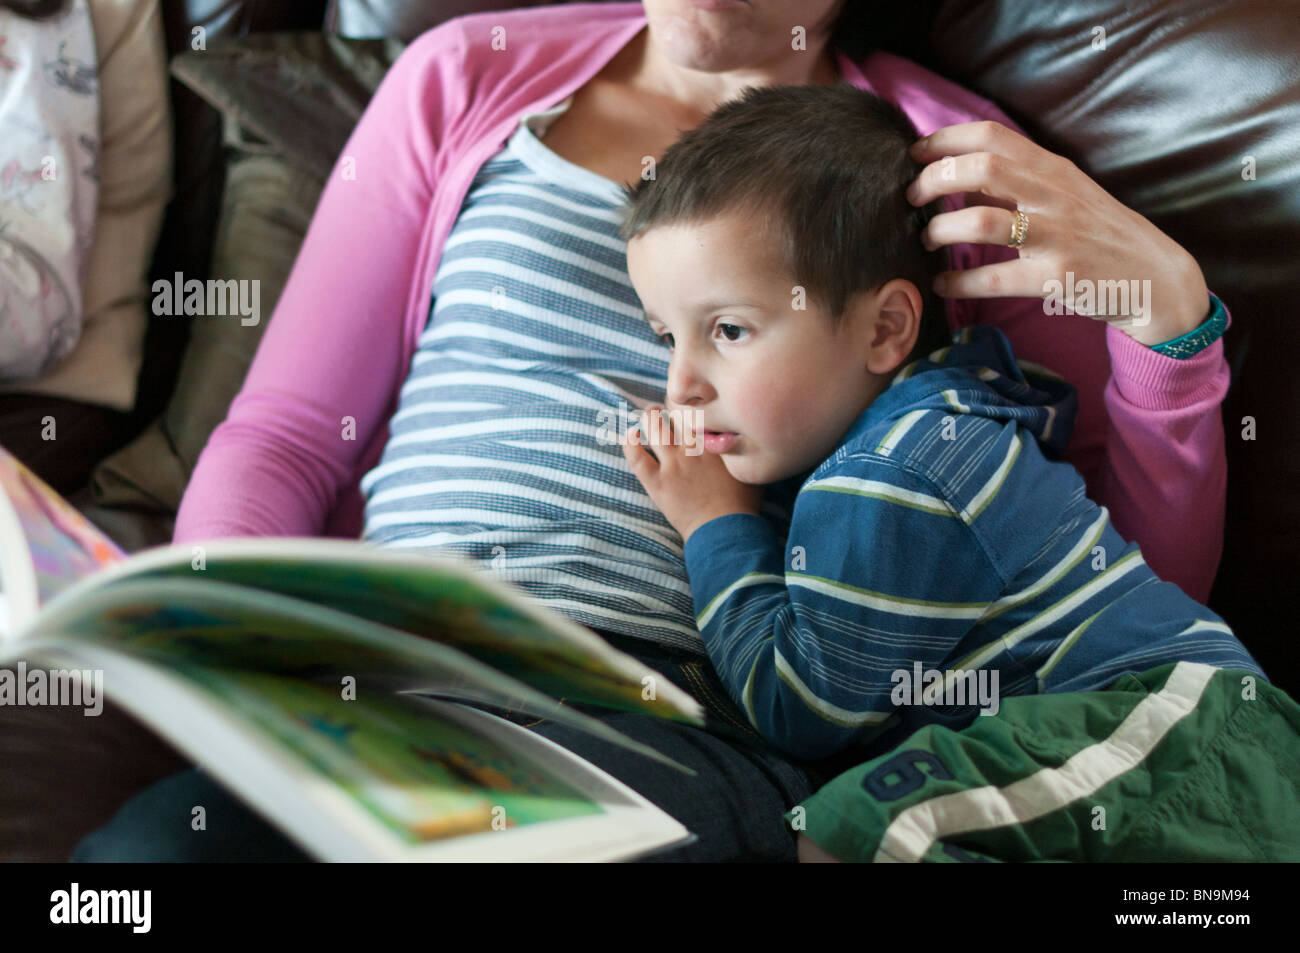 Mother reading bedtime stories to child stock photo for Bed stories online